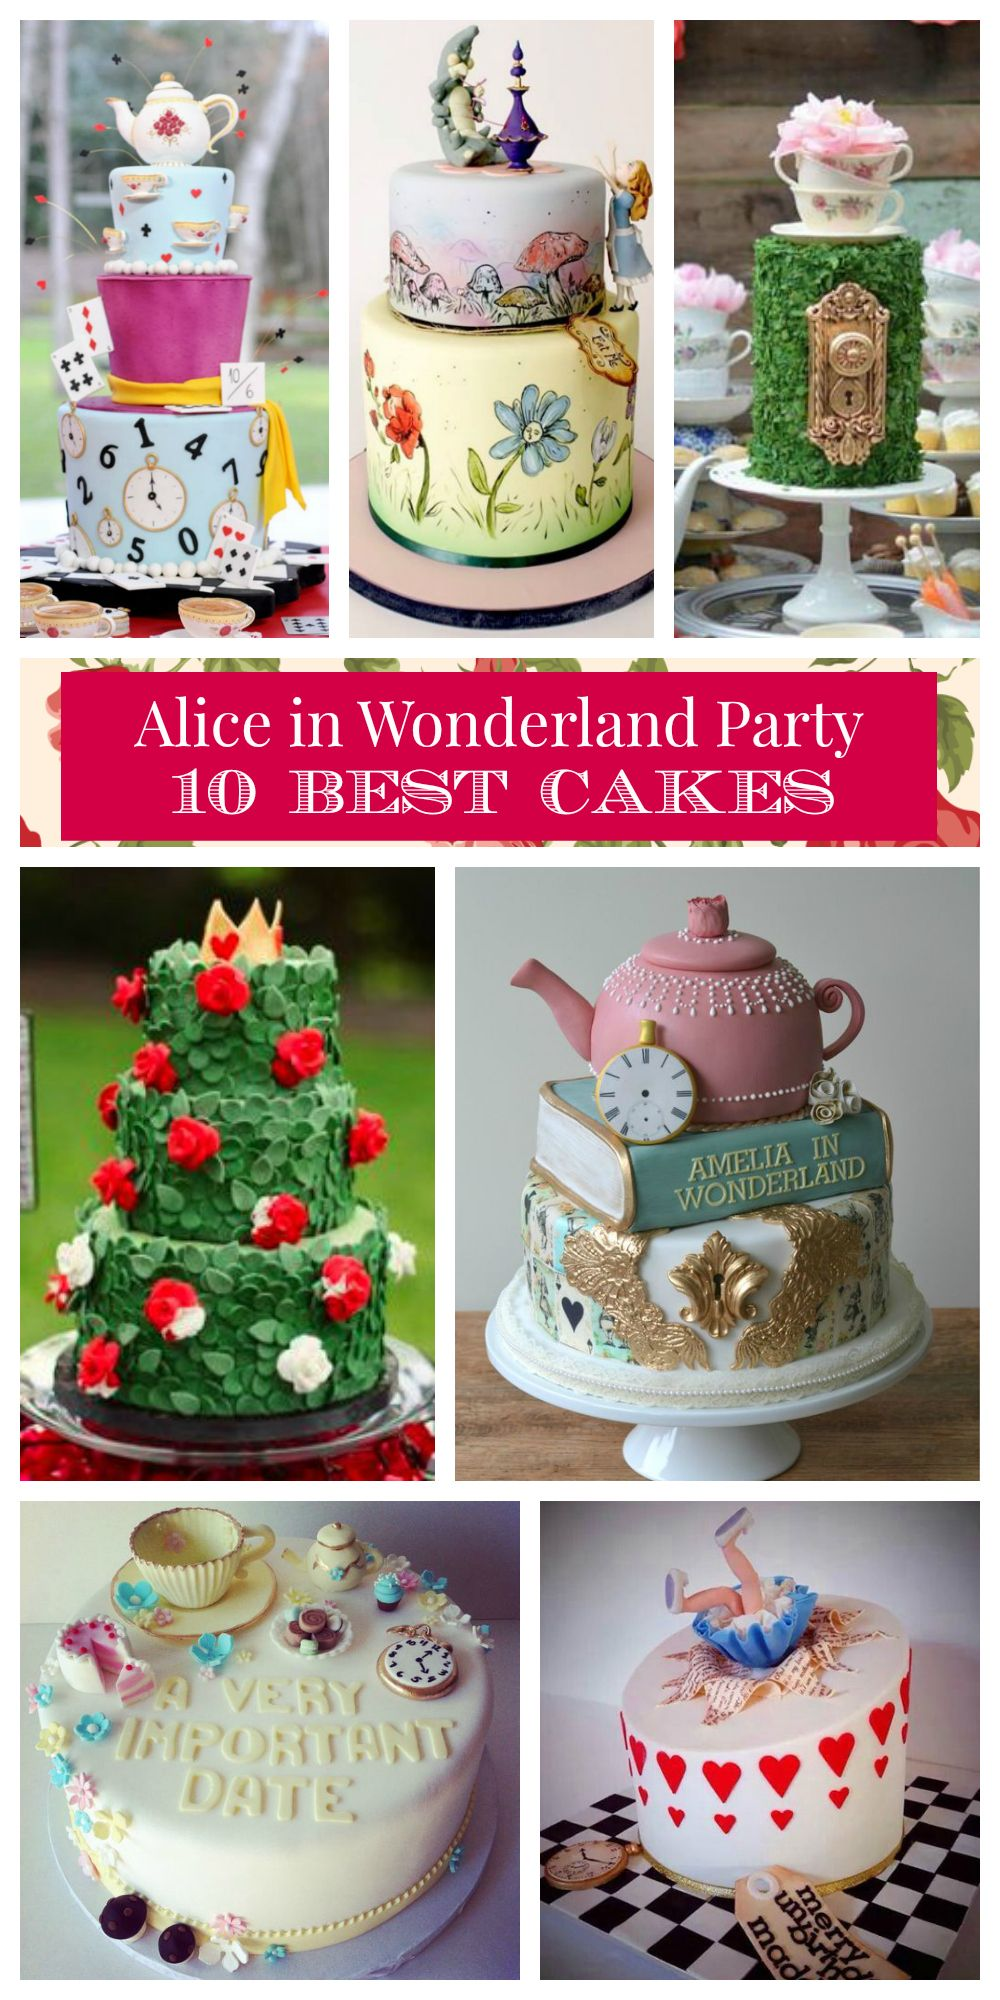 Alice In Wonderland Party Cake Recipe Best 10 Ideas Easy Simple